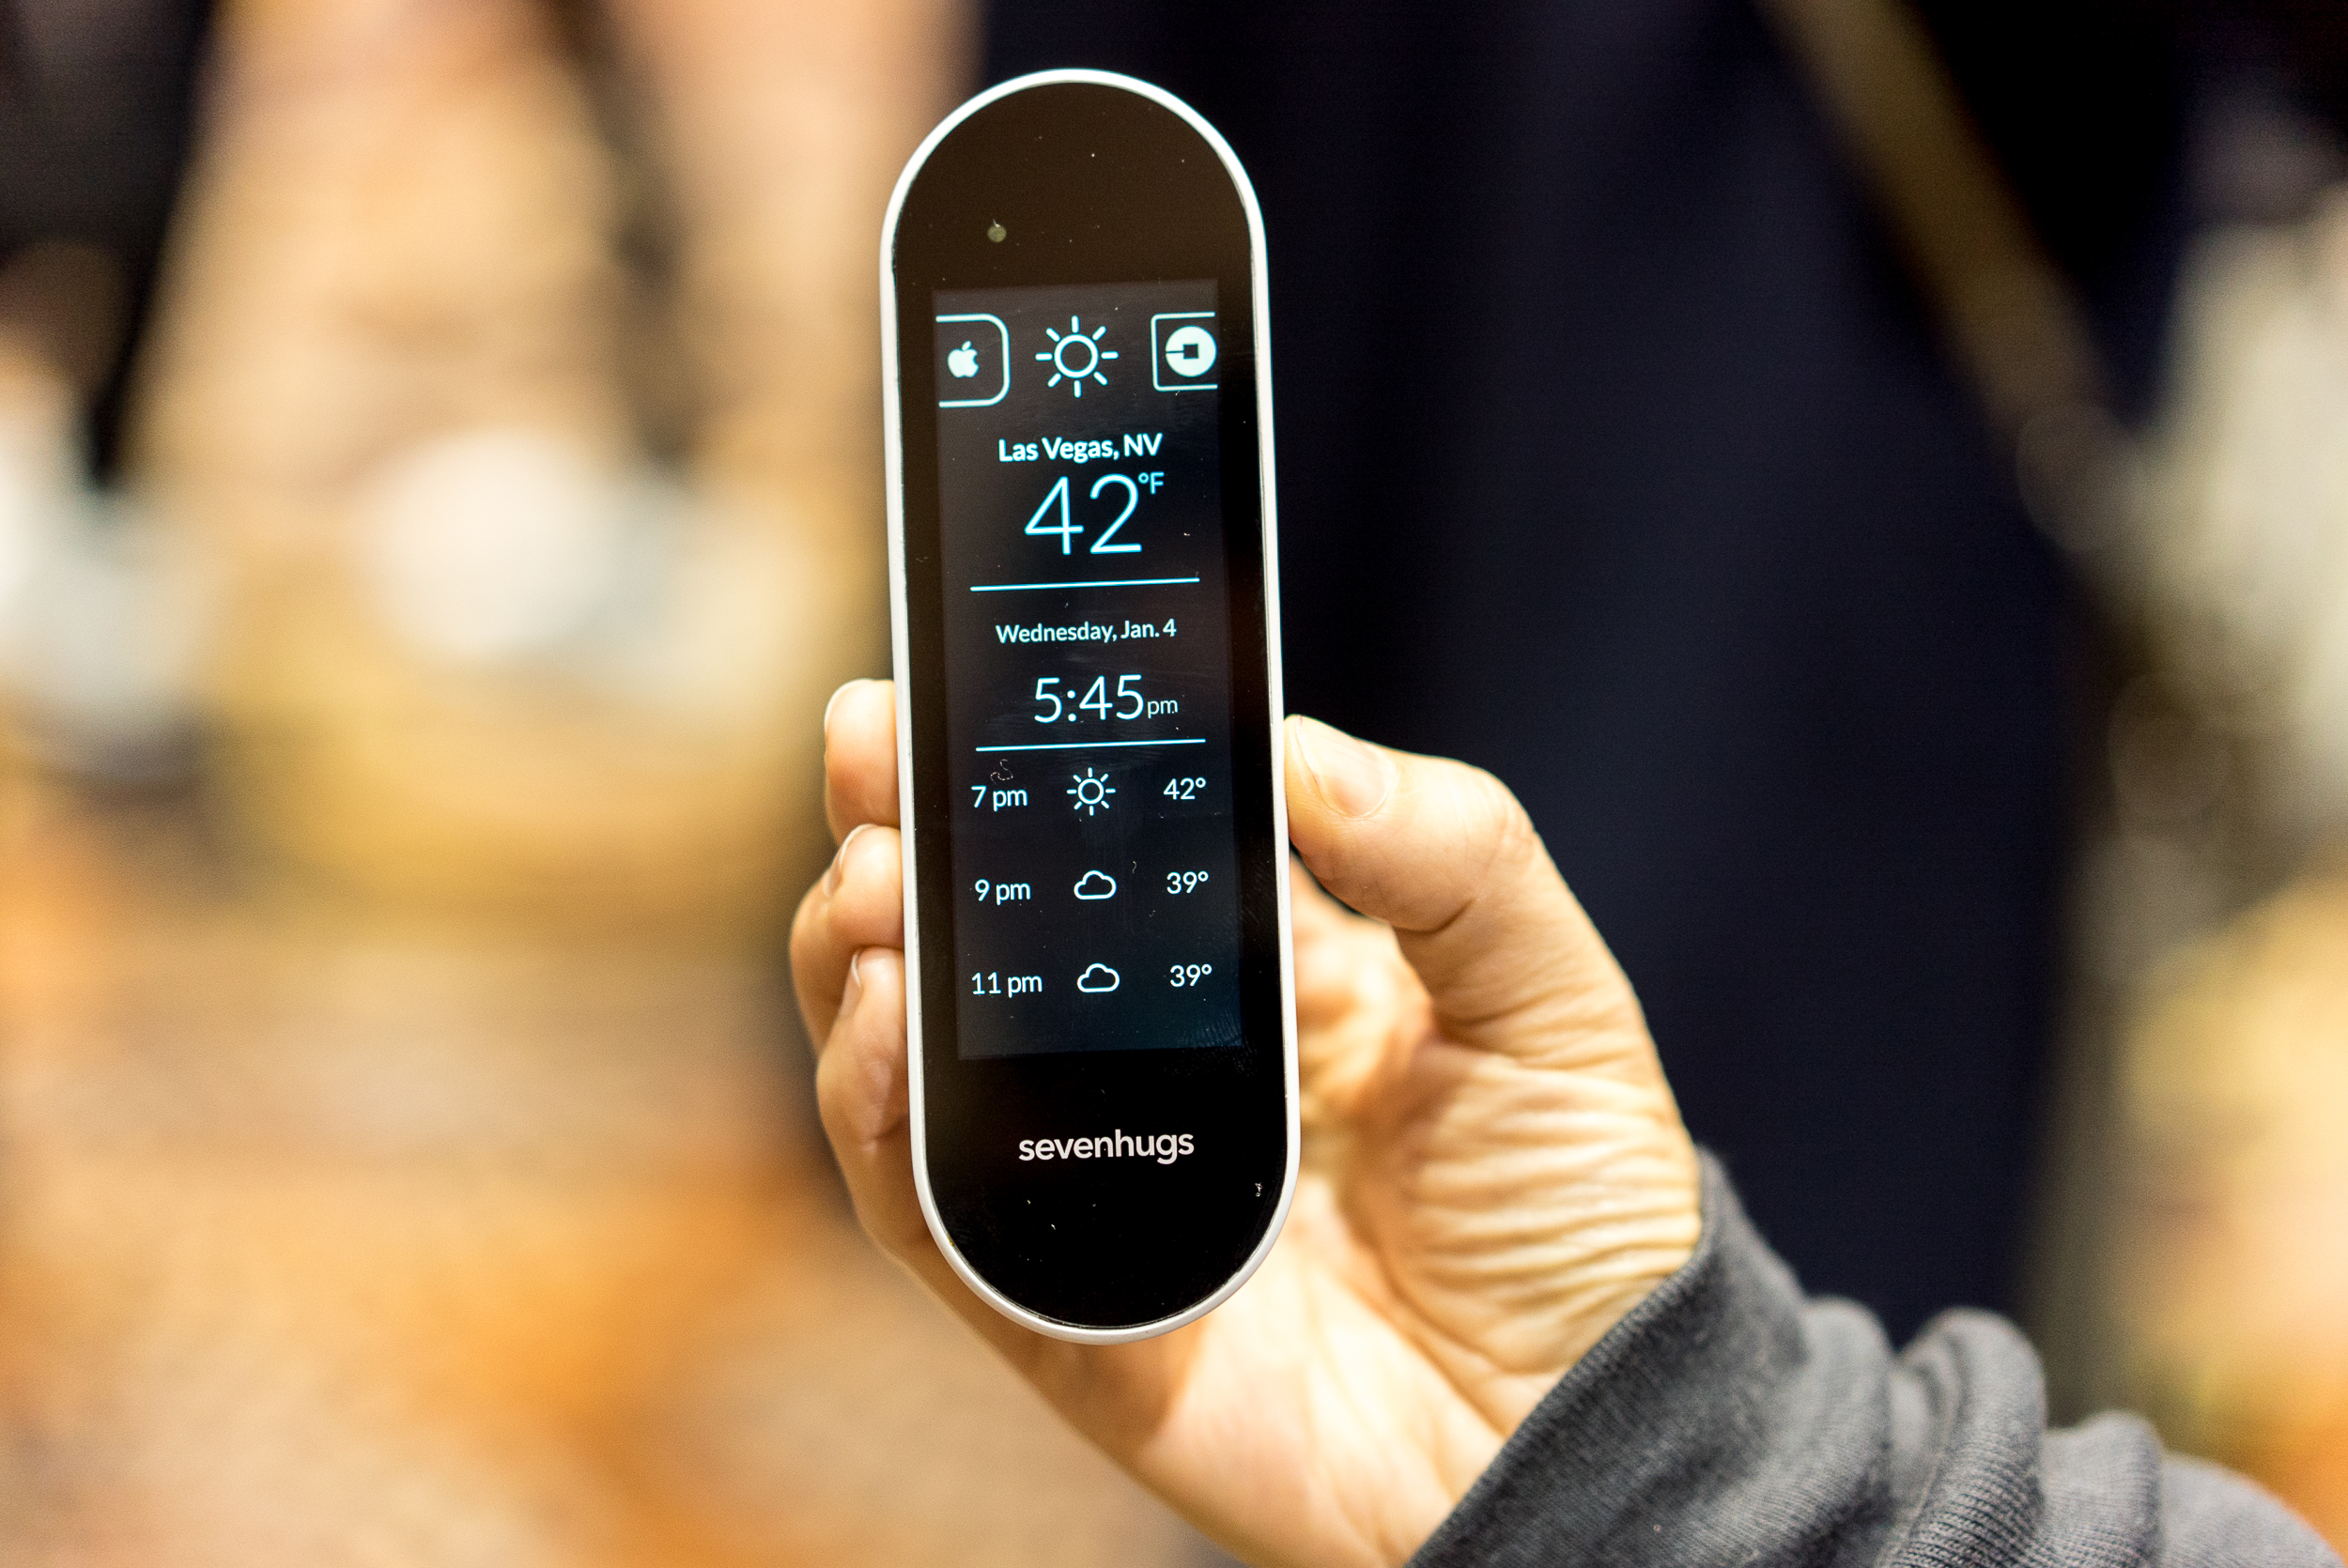 Sevenhugs Smart Remote Controls Any Smart Device You Point It At Ars Technica